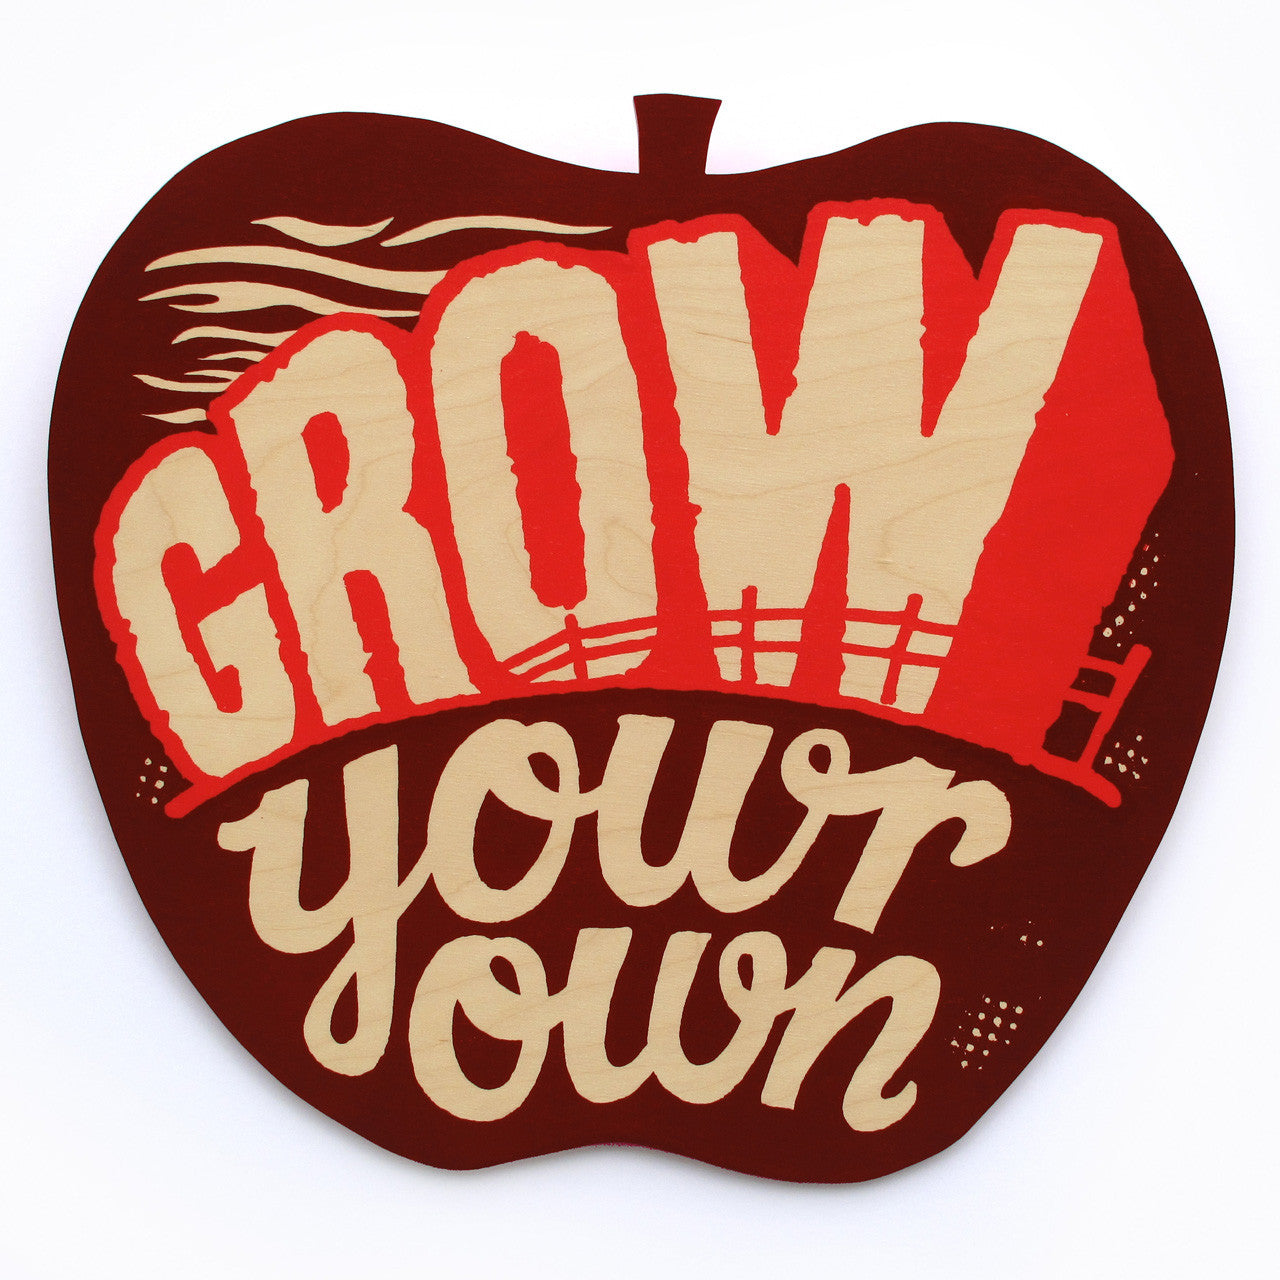 Grow Your Own print on wood by Andy Smith